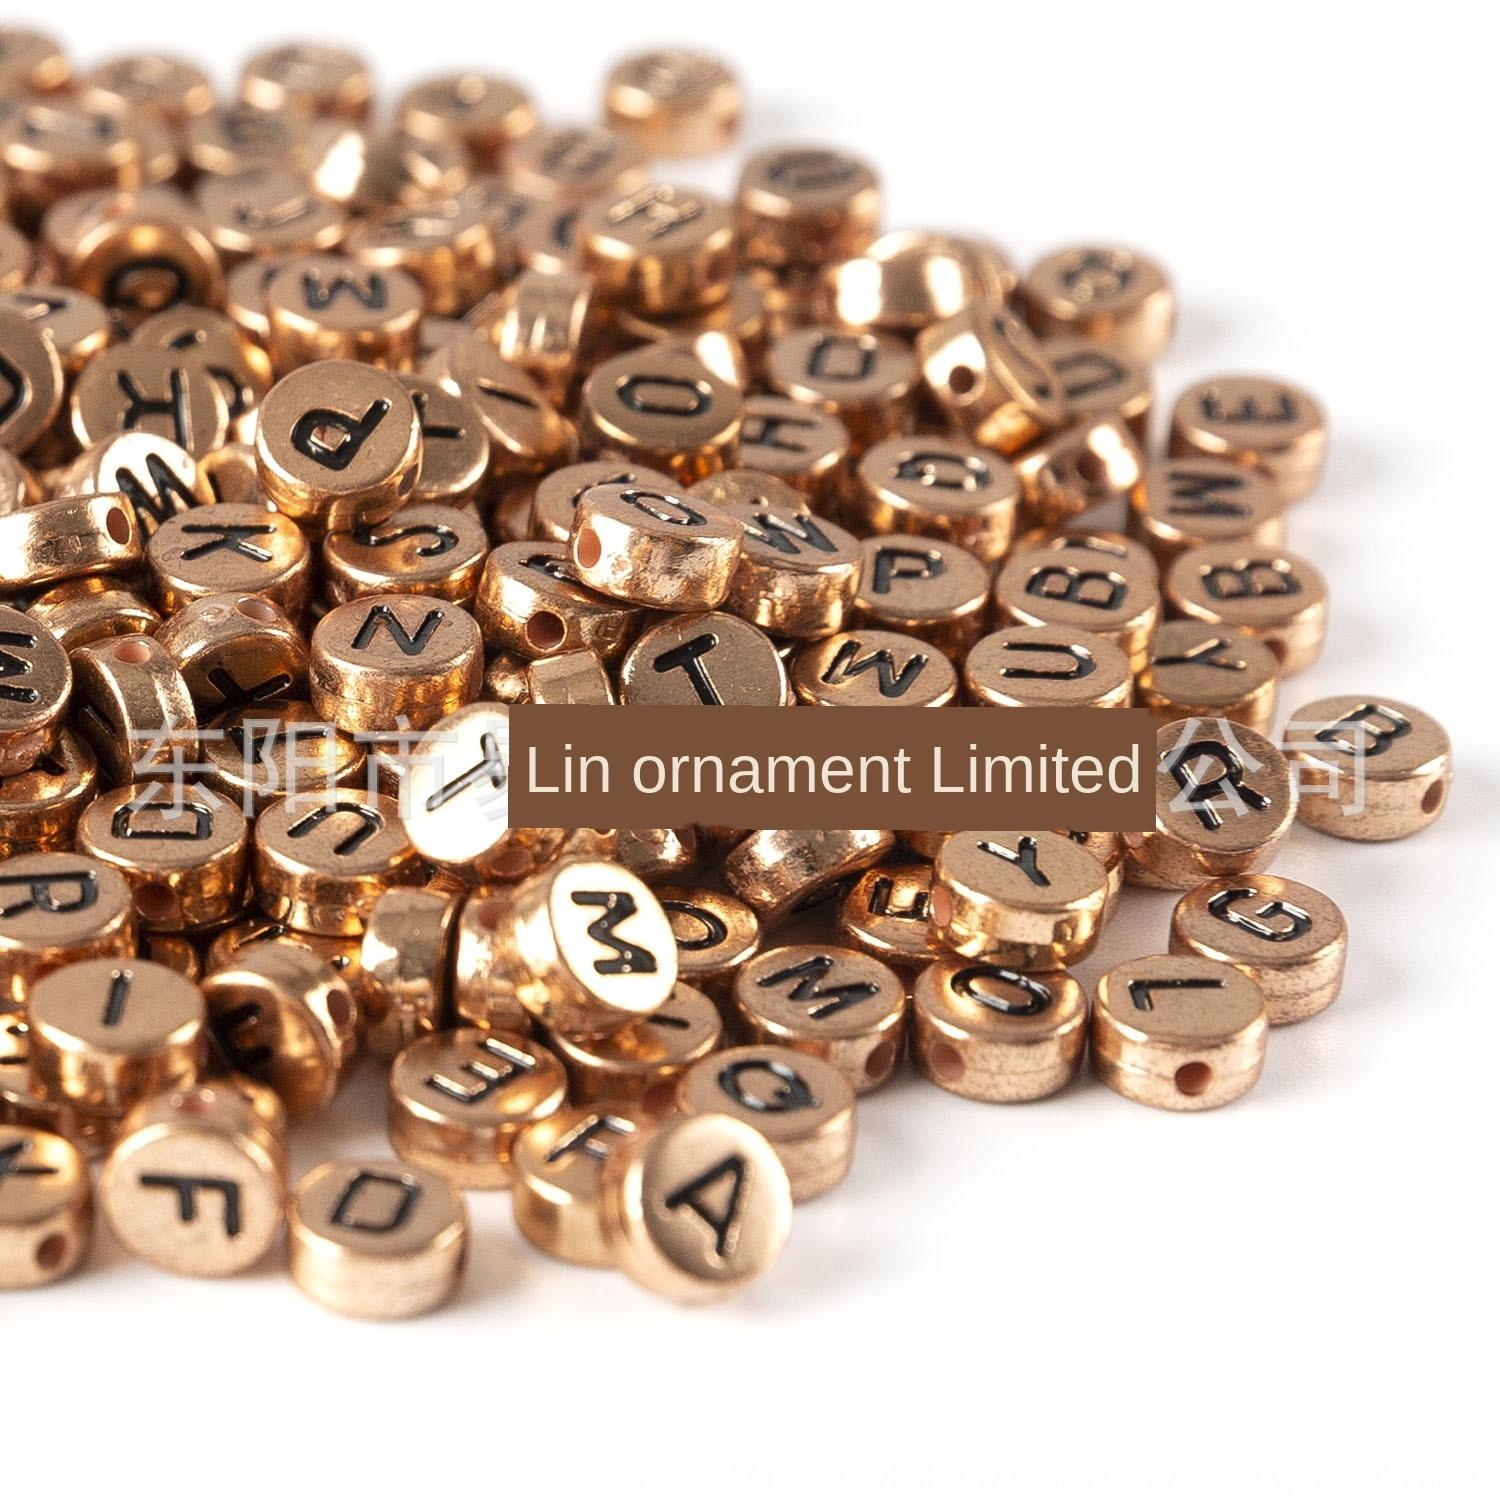 2021 Acrylic Letter Rose Gold 4x 7mm Oblate Diy Puzzle Bracelet Diy Beads Accessories Beads Accessories 8181 From Toptradingco 23 77 Dhgate Com